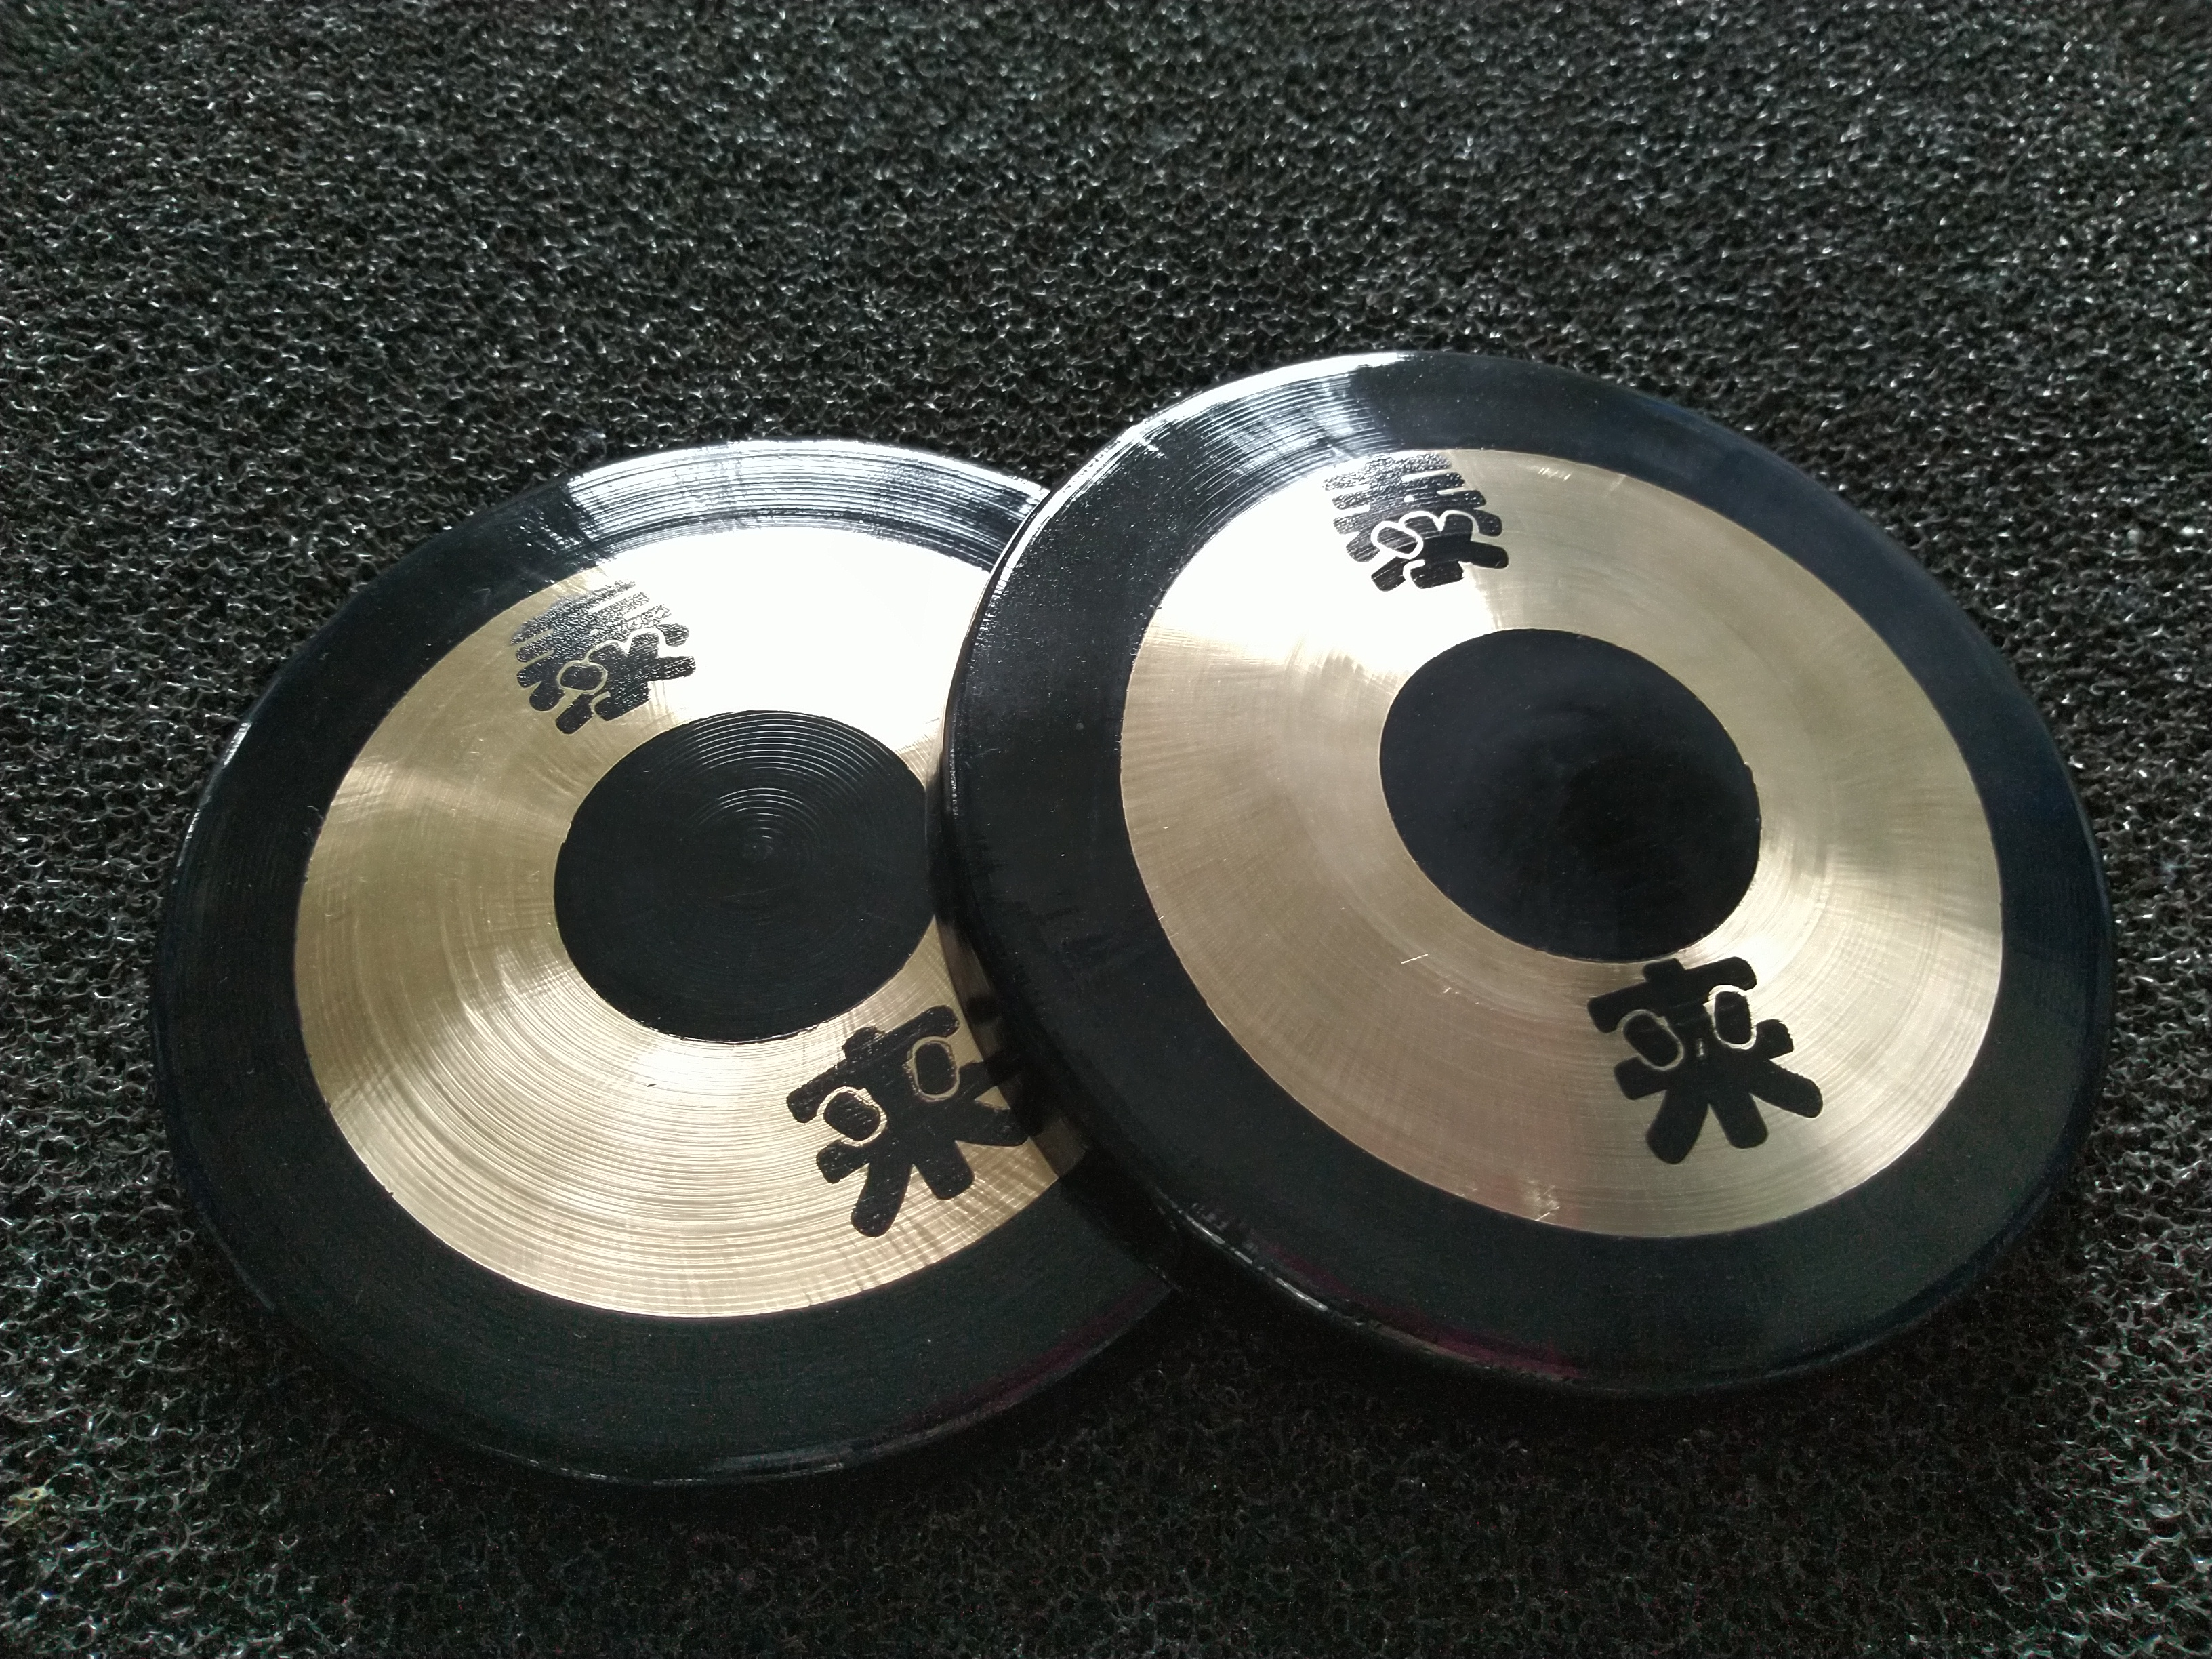 our company can produce all kinds of metal gongs.Wholesale Instrument Chinese Brass Gongs are Percussion Brass Alloy Gongs.There are many sizes of Percussion Brass Alloy Gongs,such as 30cm,22cm,36cm.Of course we can OEM and produce according to your size and requirements.The gong in the picture is 6'' Copper Gongs or called Mini Metal Gongs 15cm.The Wholesale Instrument Chinese Brass Gongs are handmade and have best quality.The Percussion Brass Alloy Gongs are used in the company celebration field,warning or performance and so on. Every gong has a plastics bag outside and carton outside.We can not touch the gongs by hand.We had better wear gloves to carry the gongs.Hope to cooperate with each other.We will give you the best service and best quality gongs.